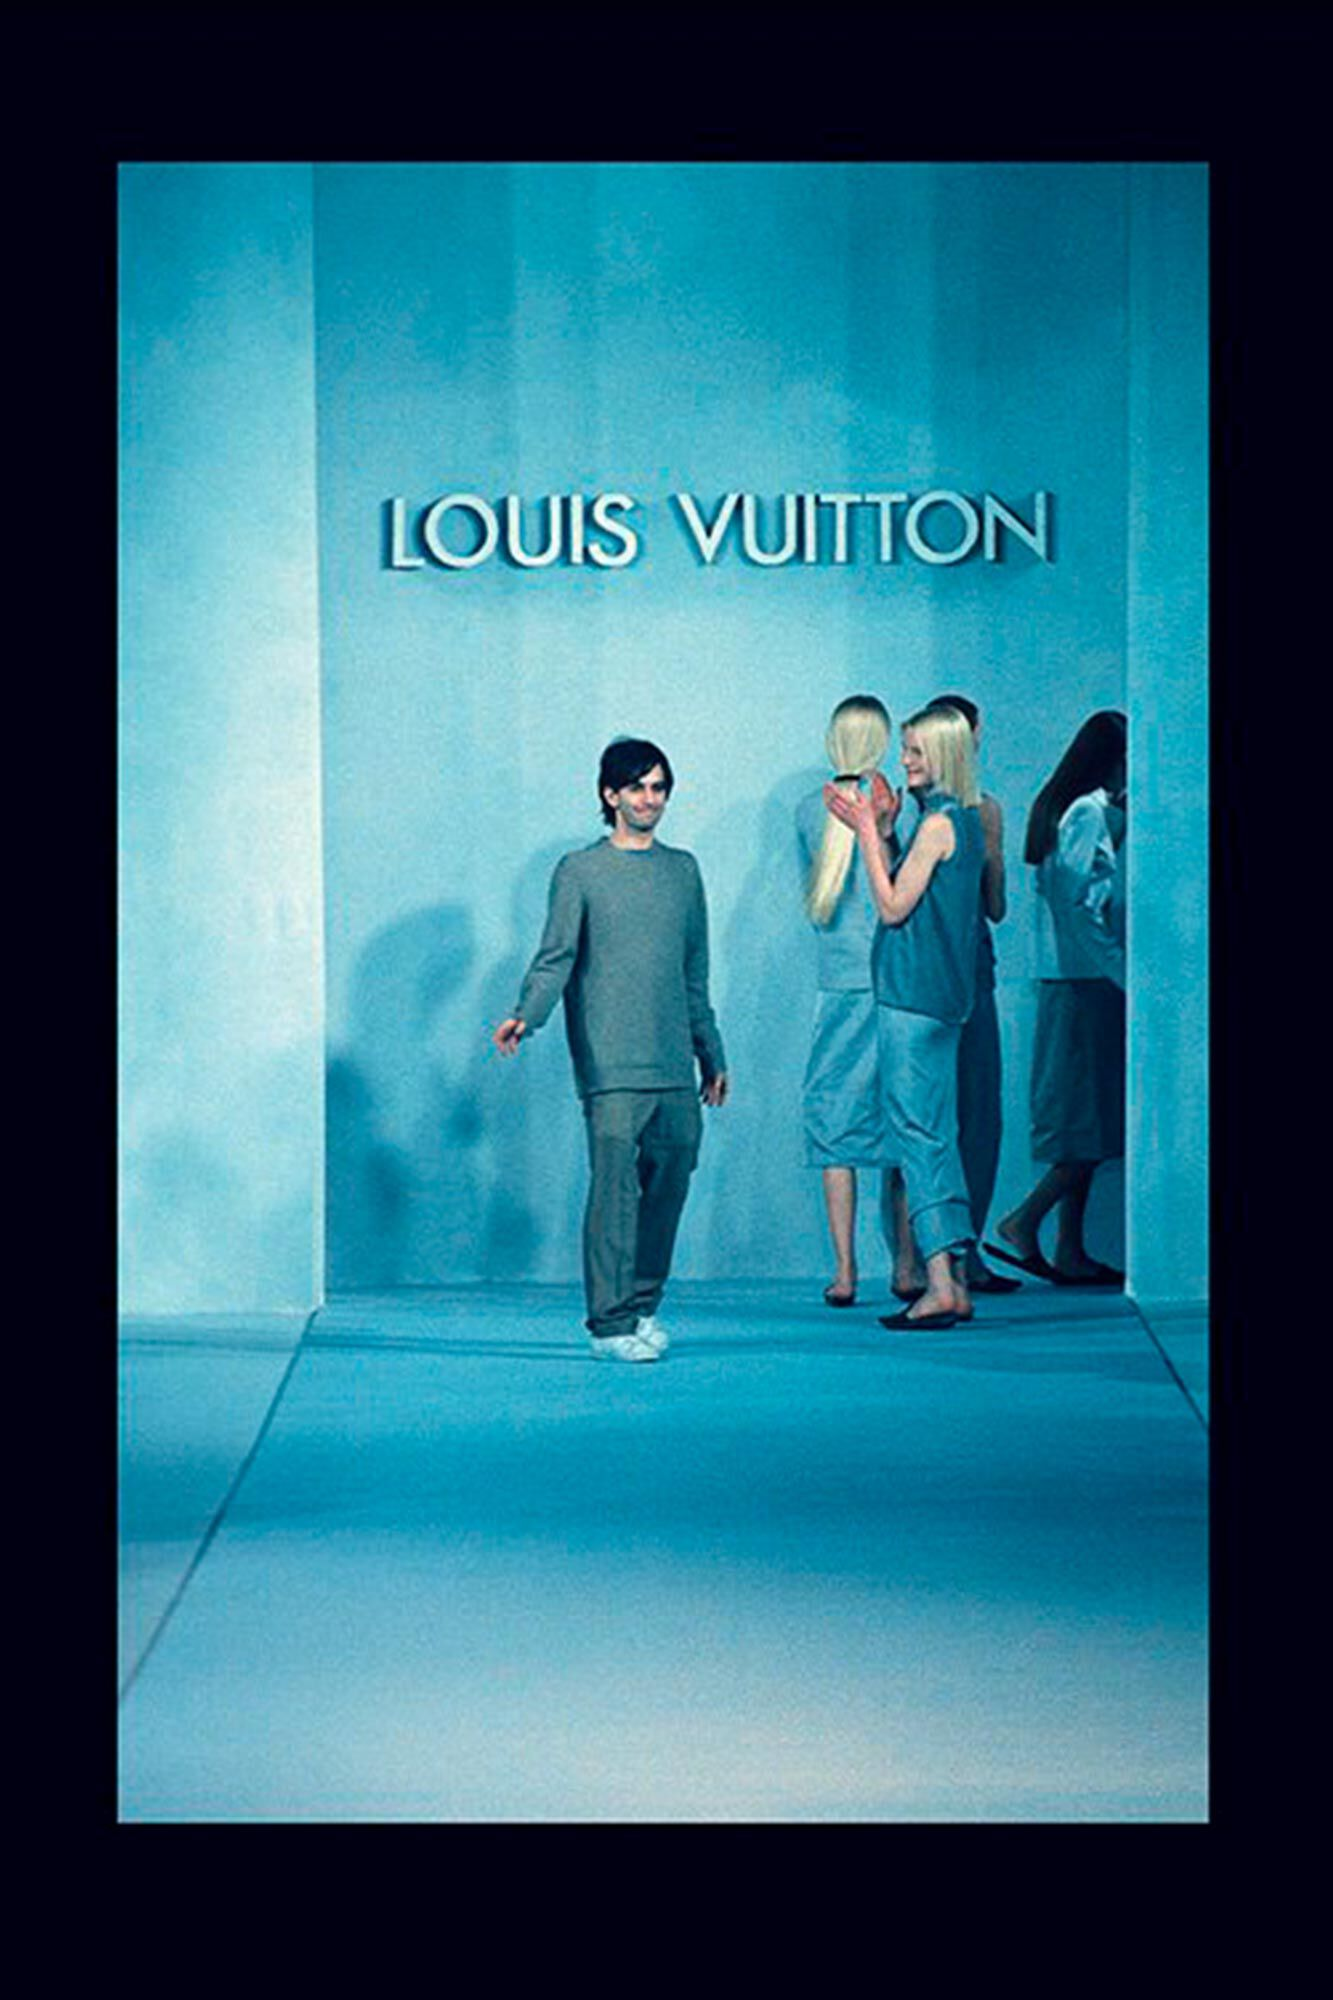 Louis vuitton catwalk TH1018, MULTIPLE